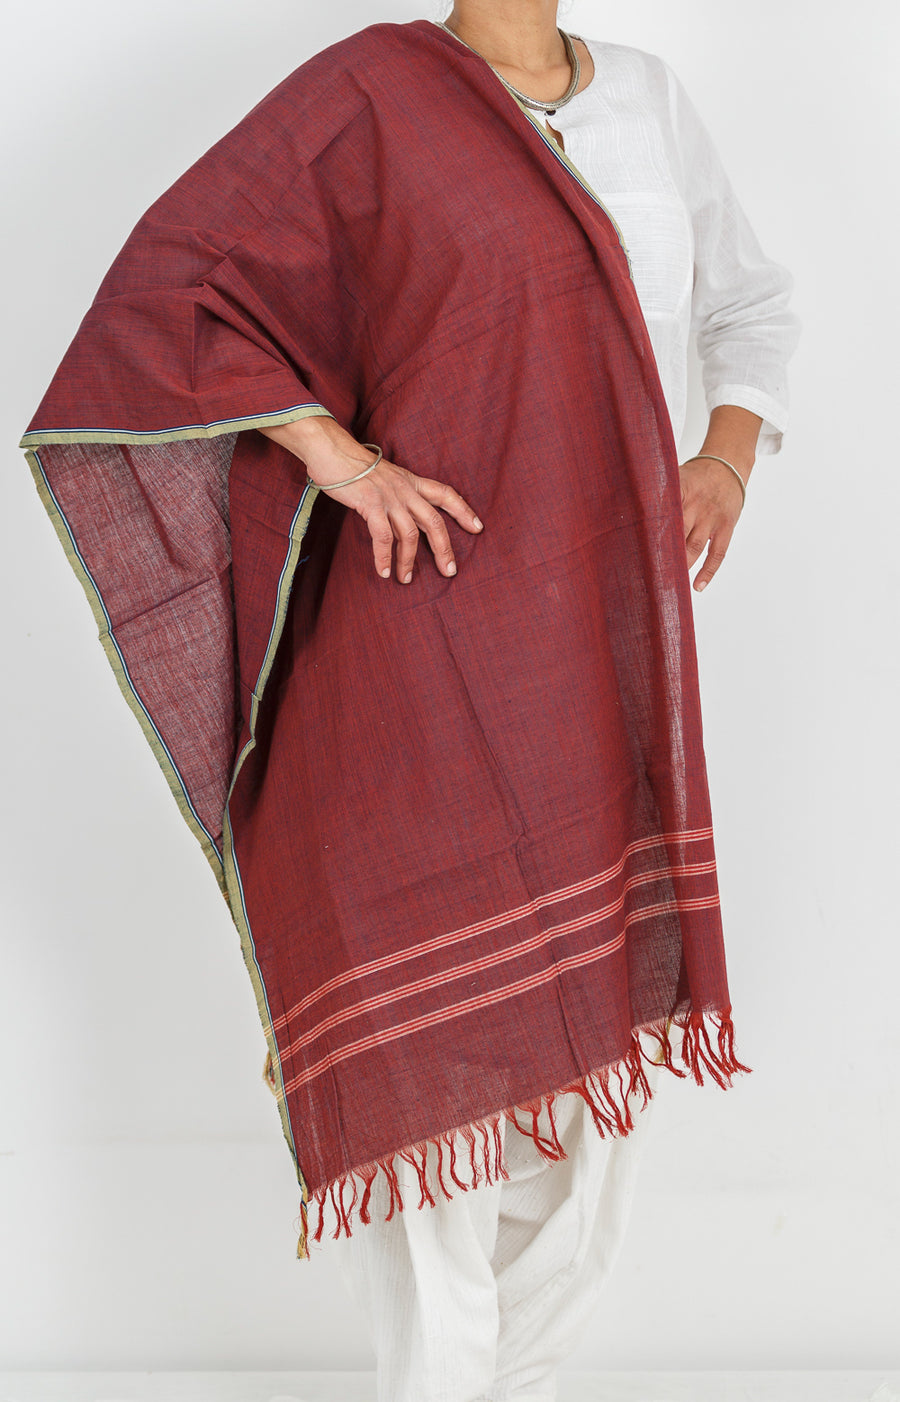 Malkha Natural Dyed Handlooms -CROSS COLOUR STOLE : ALIZARIN RED : DARK INDIGO